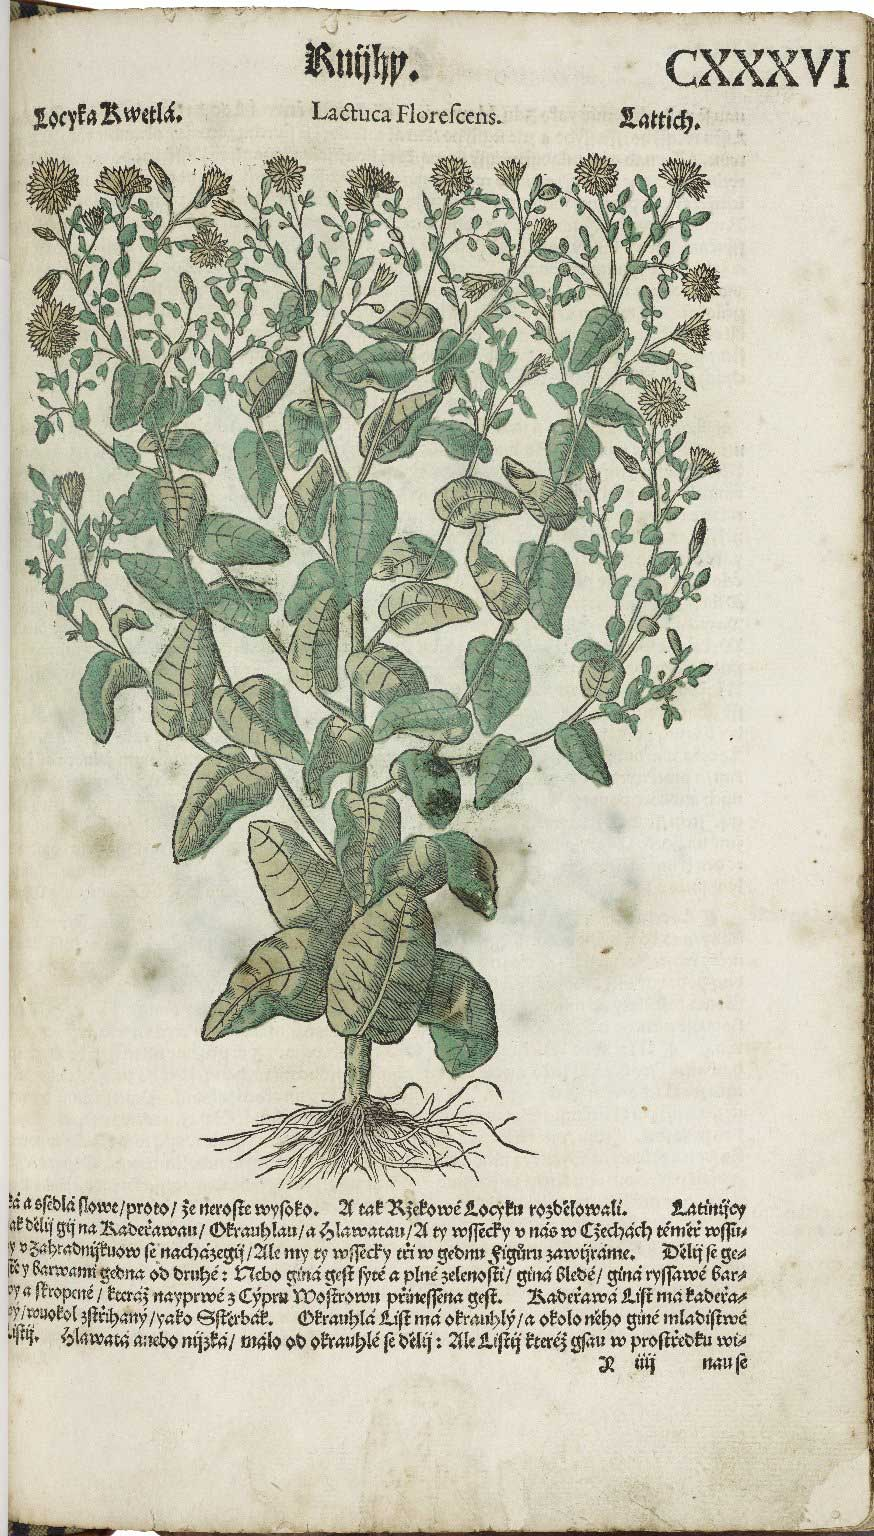 Woodcut from Pietro Andrea Mattioli's sixteenth-century herbal